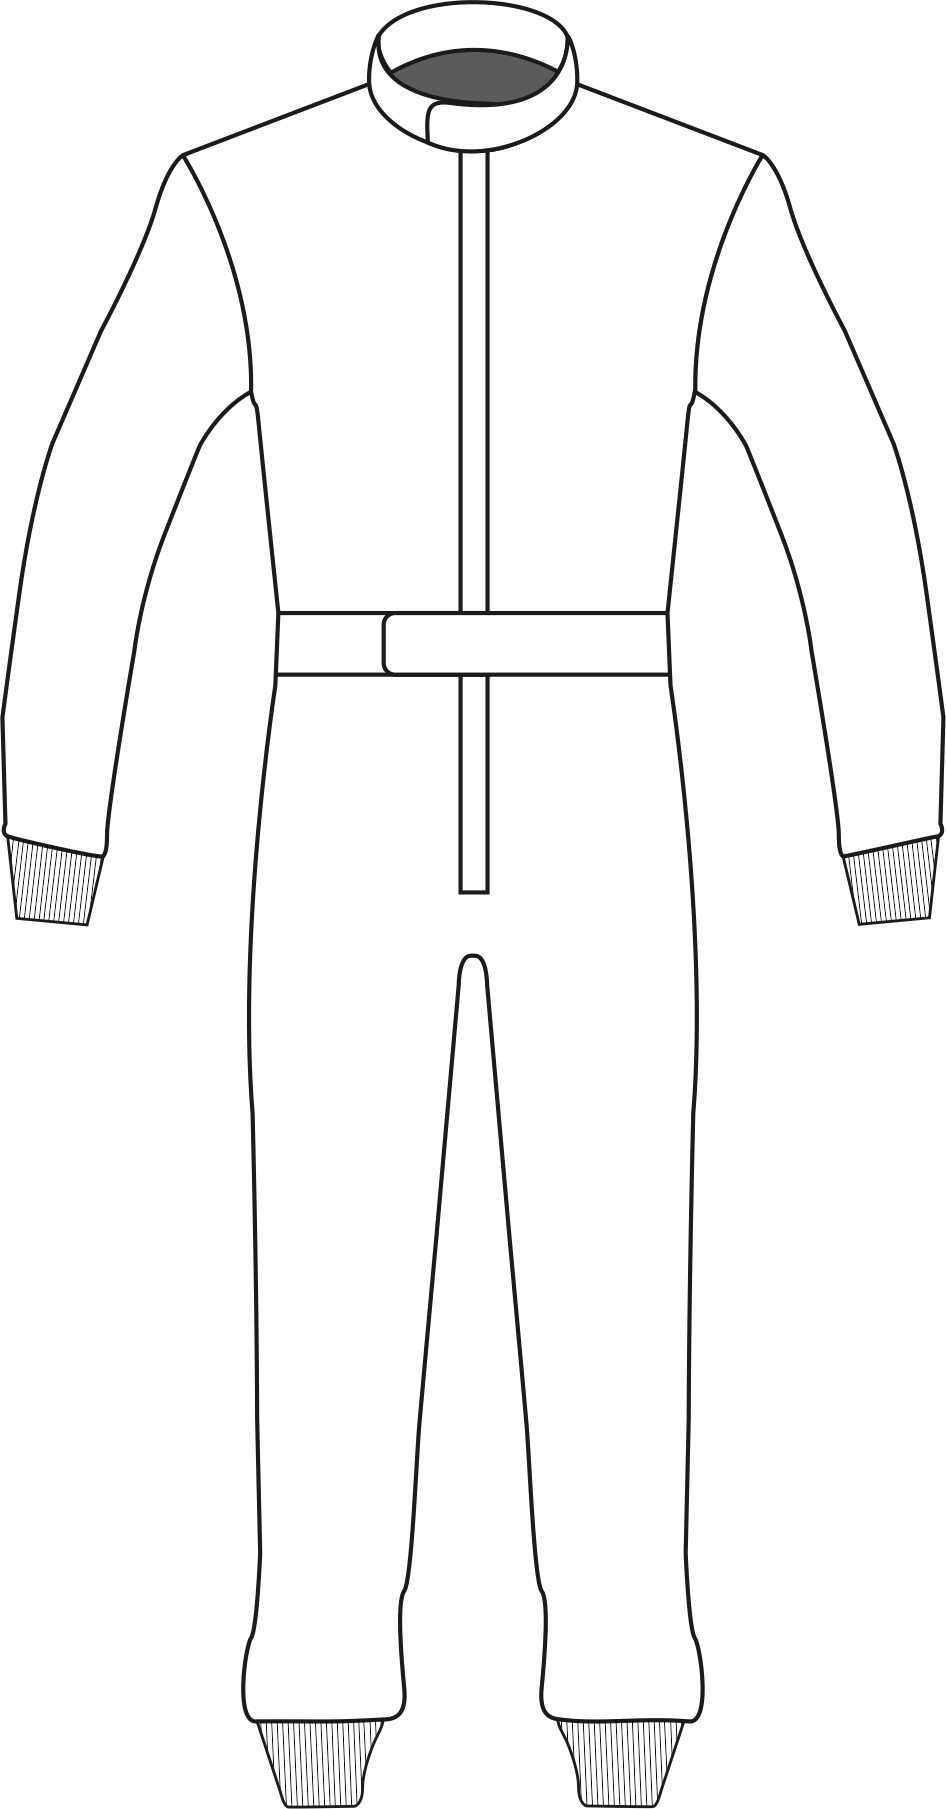 Racesuit Template Design 06